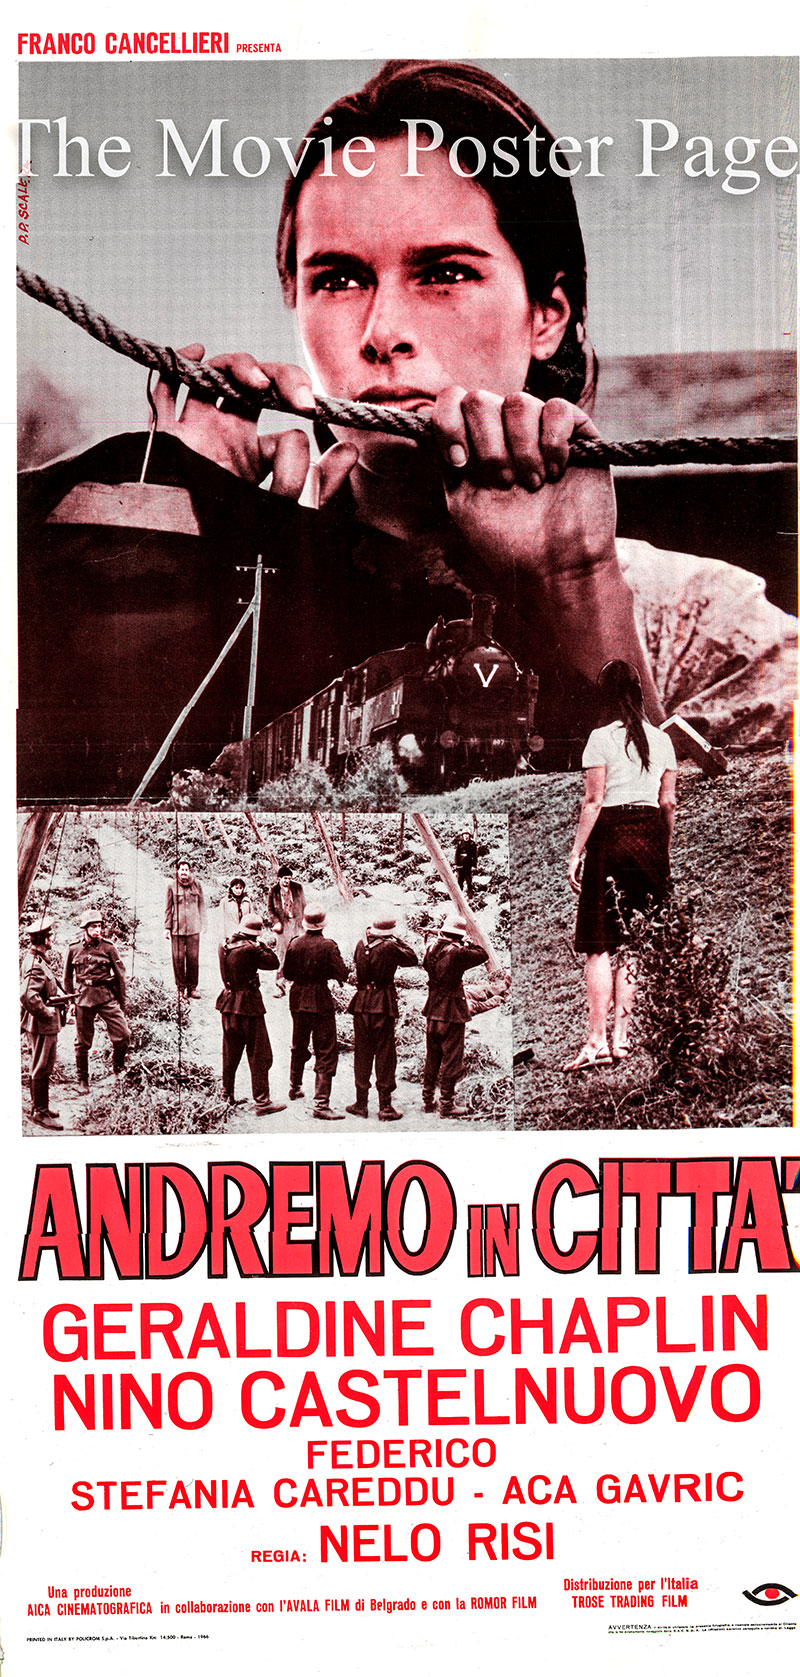 Pictured is an Italian locandina poster for the 1967 Nelo Risi film Andremo in città starring Geraldine Chaplin as Lenka.